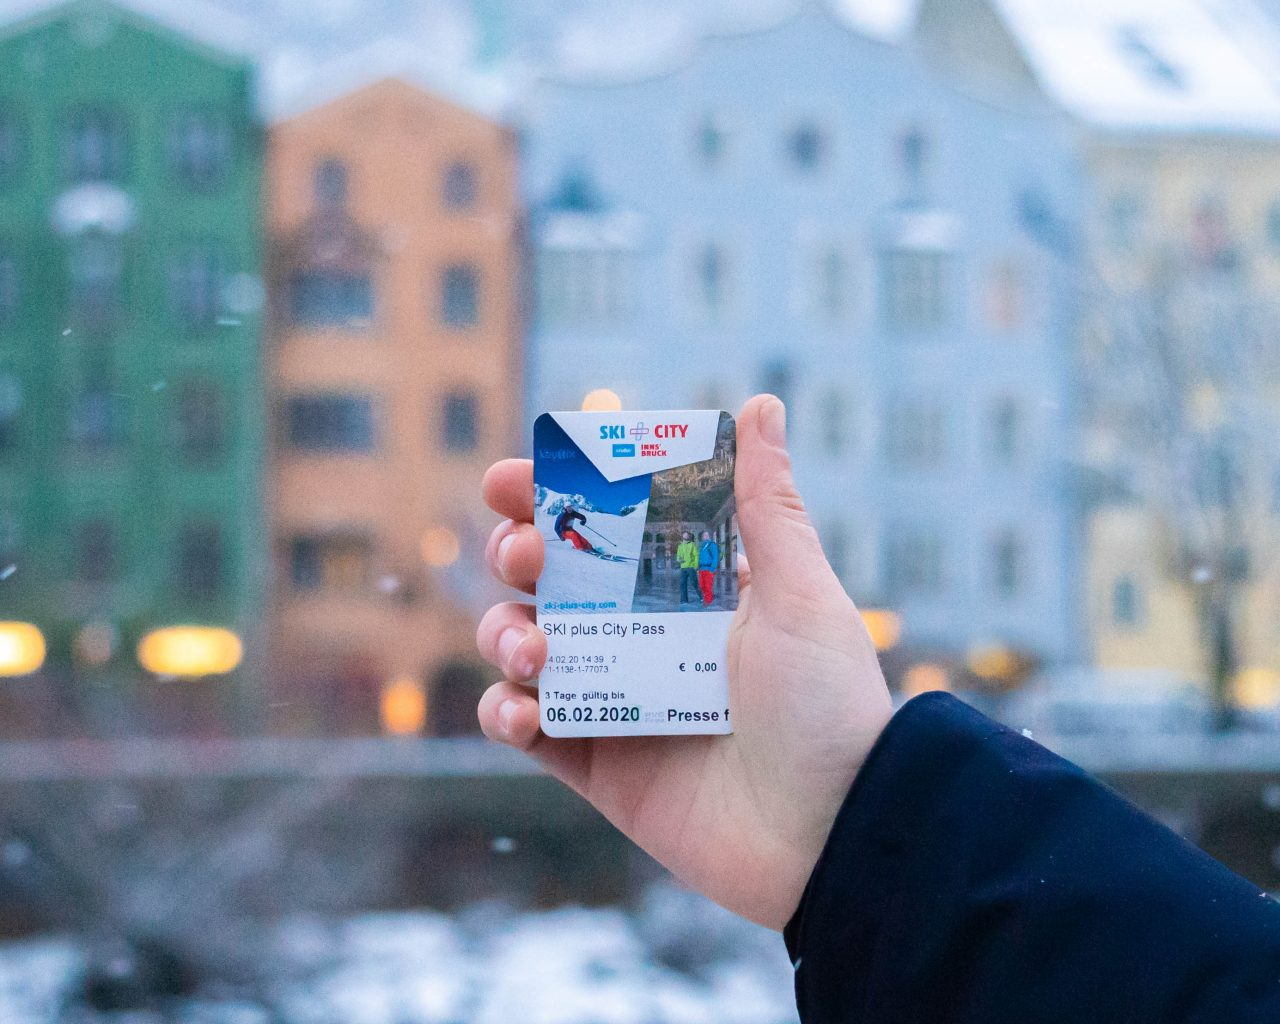 Ski-plus-city-pass-Innsbruck-in-stad